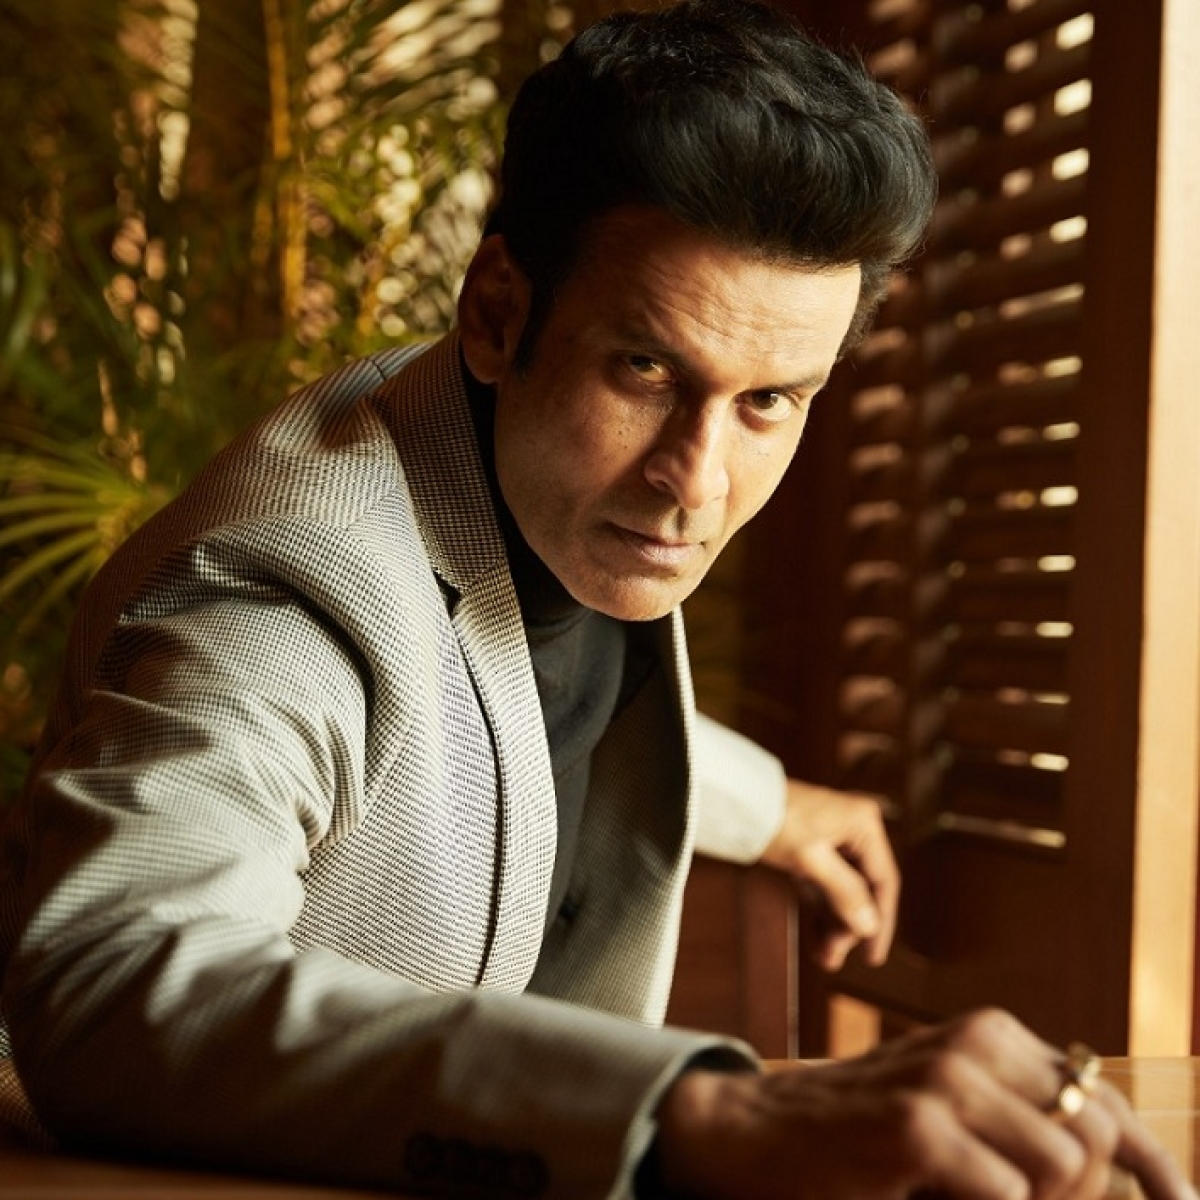 Birthday special: Manoj Bajpayee talks about being away from family amid Covid-19 pandemic, winning National Award & more